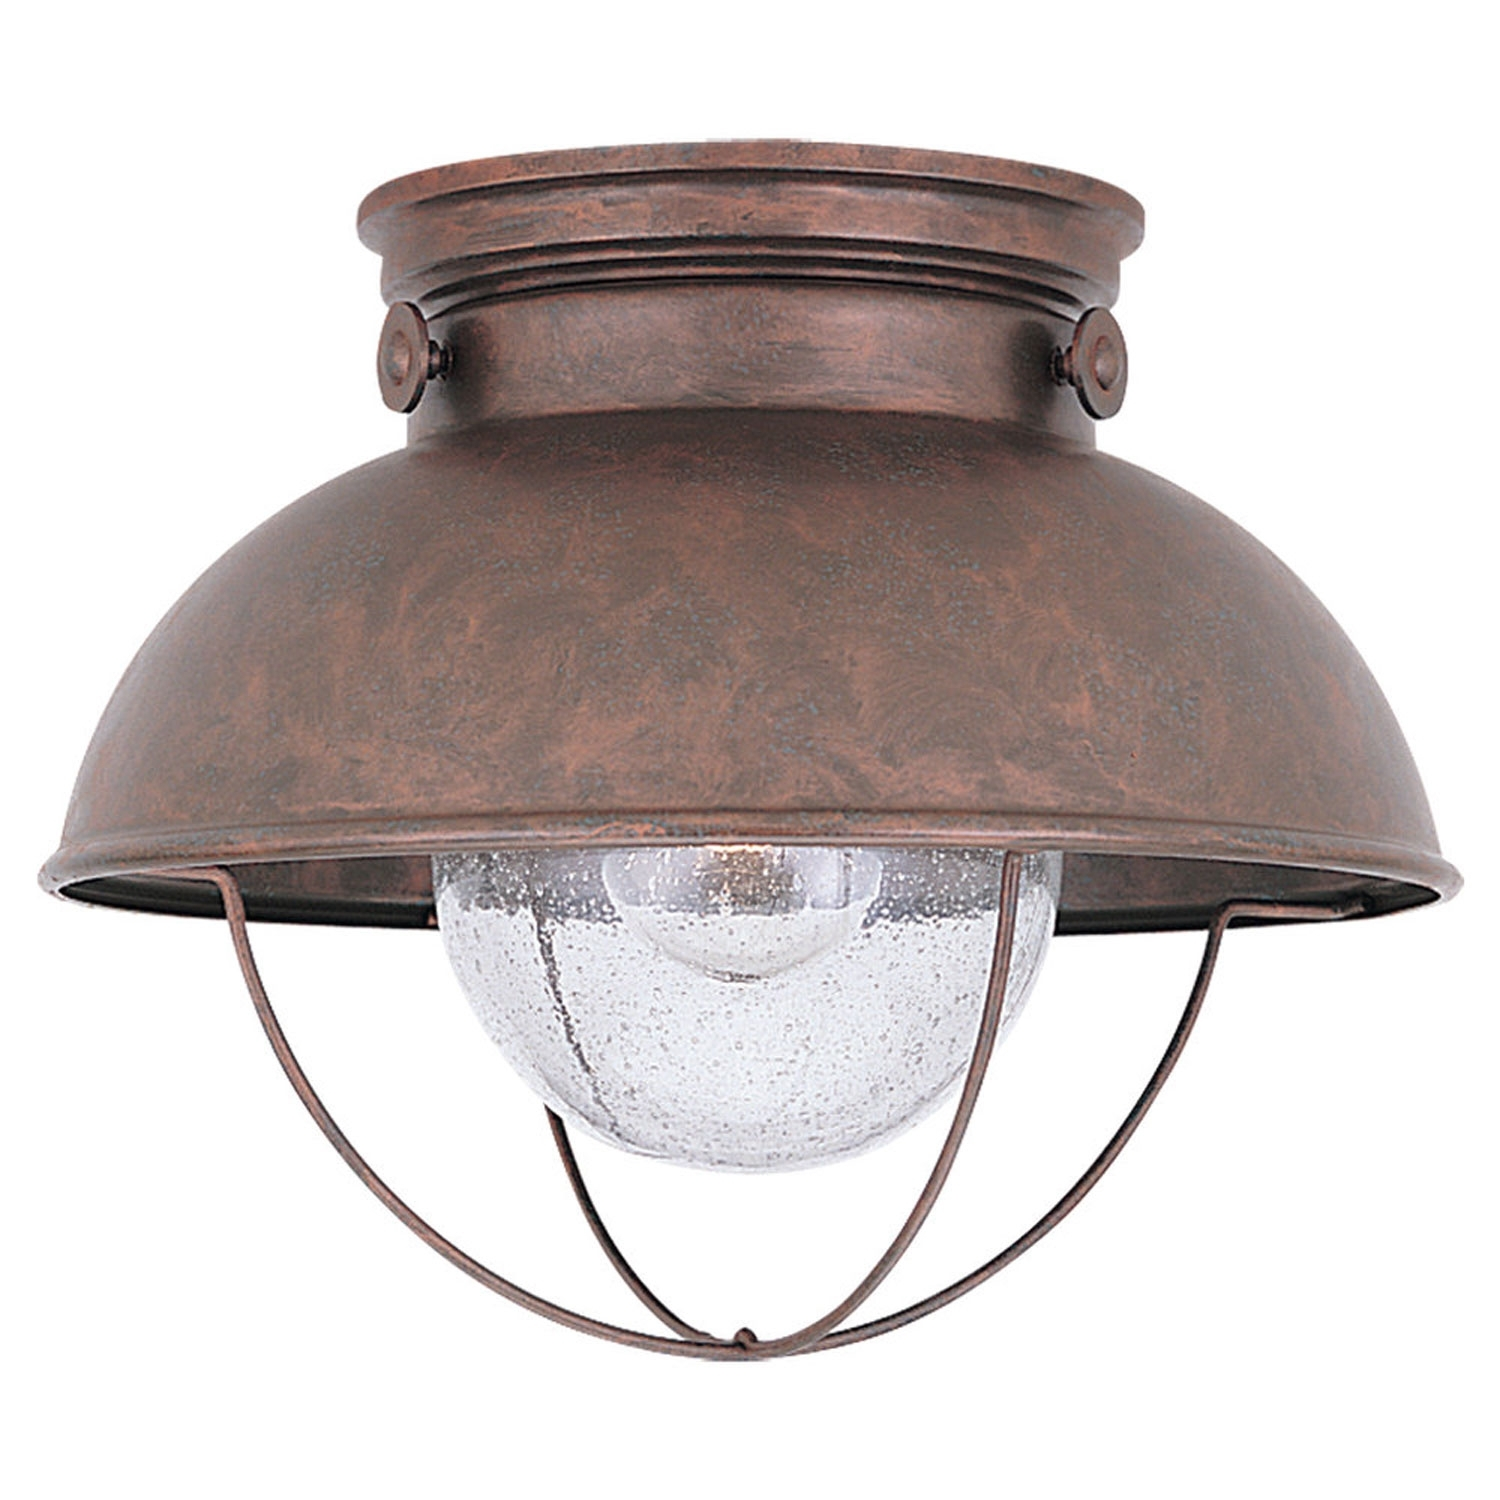 Sea Gull Lighting Sebring Weathered Copper Outdoor Ceiling Light Inside Outdoor Ceiling Can Lights (#15 of 15)